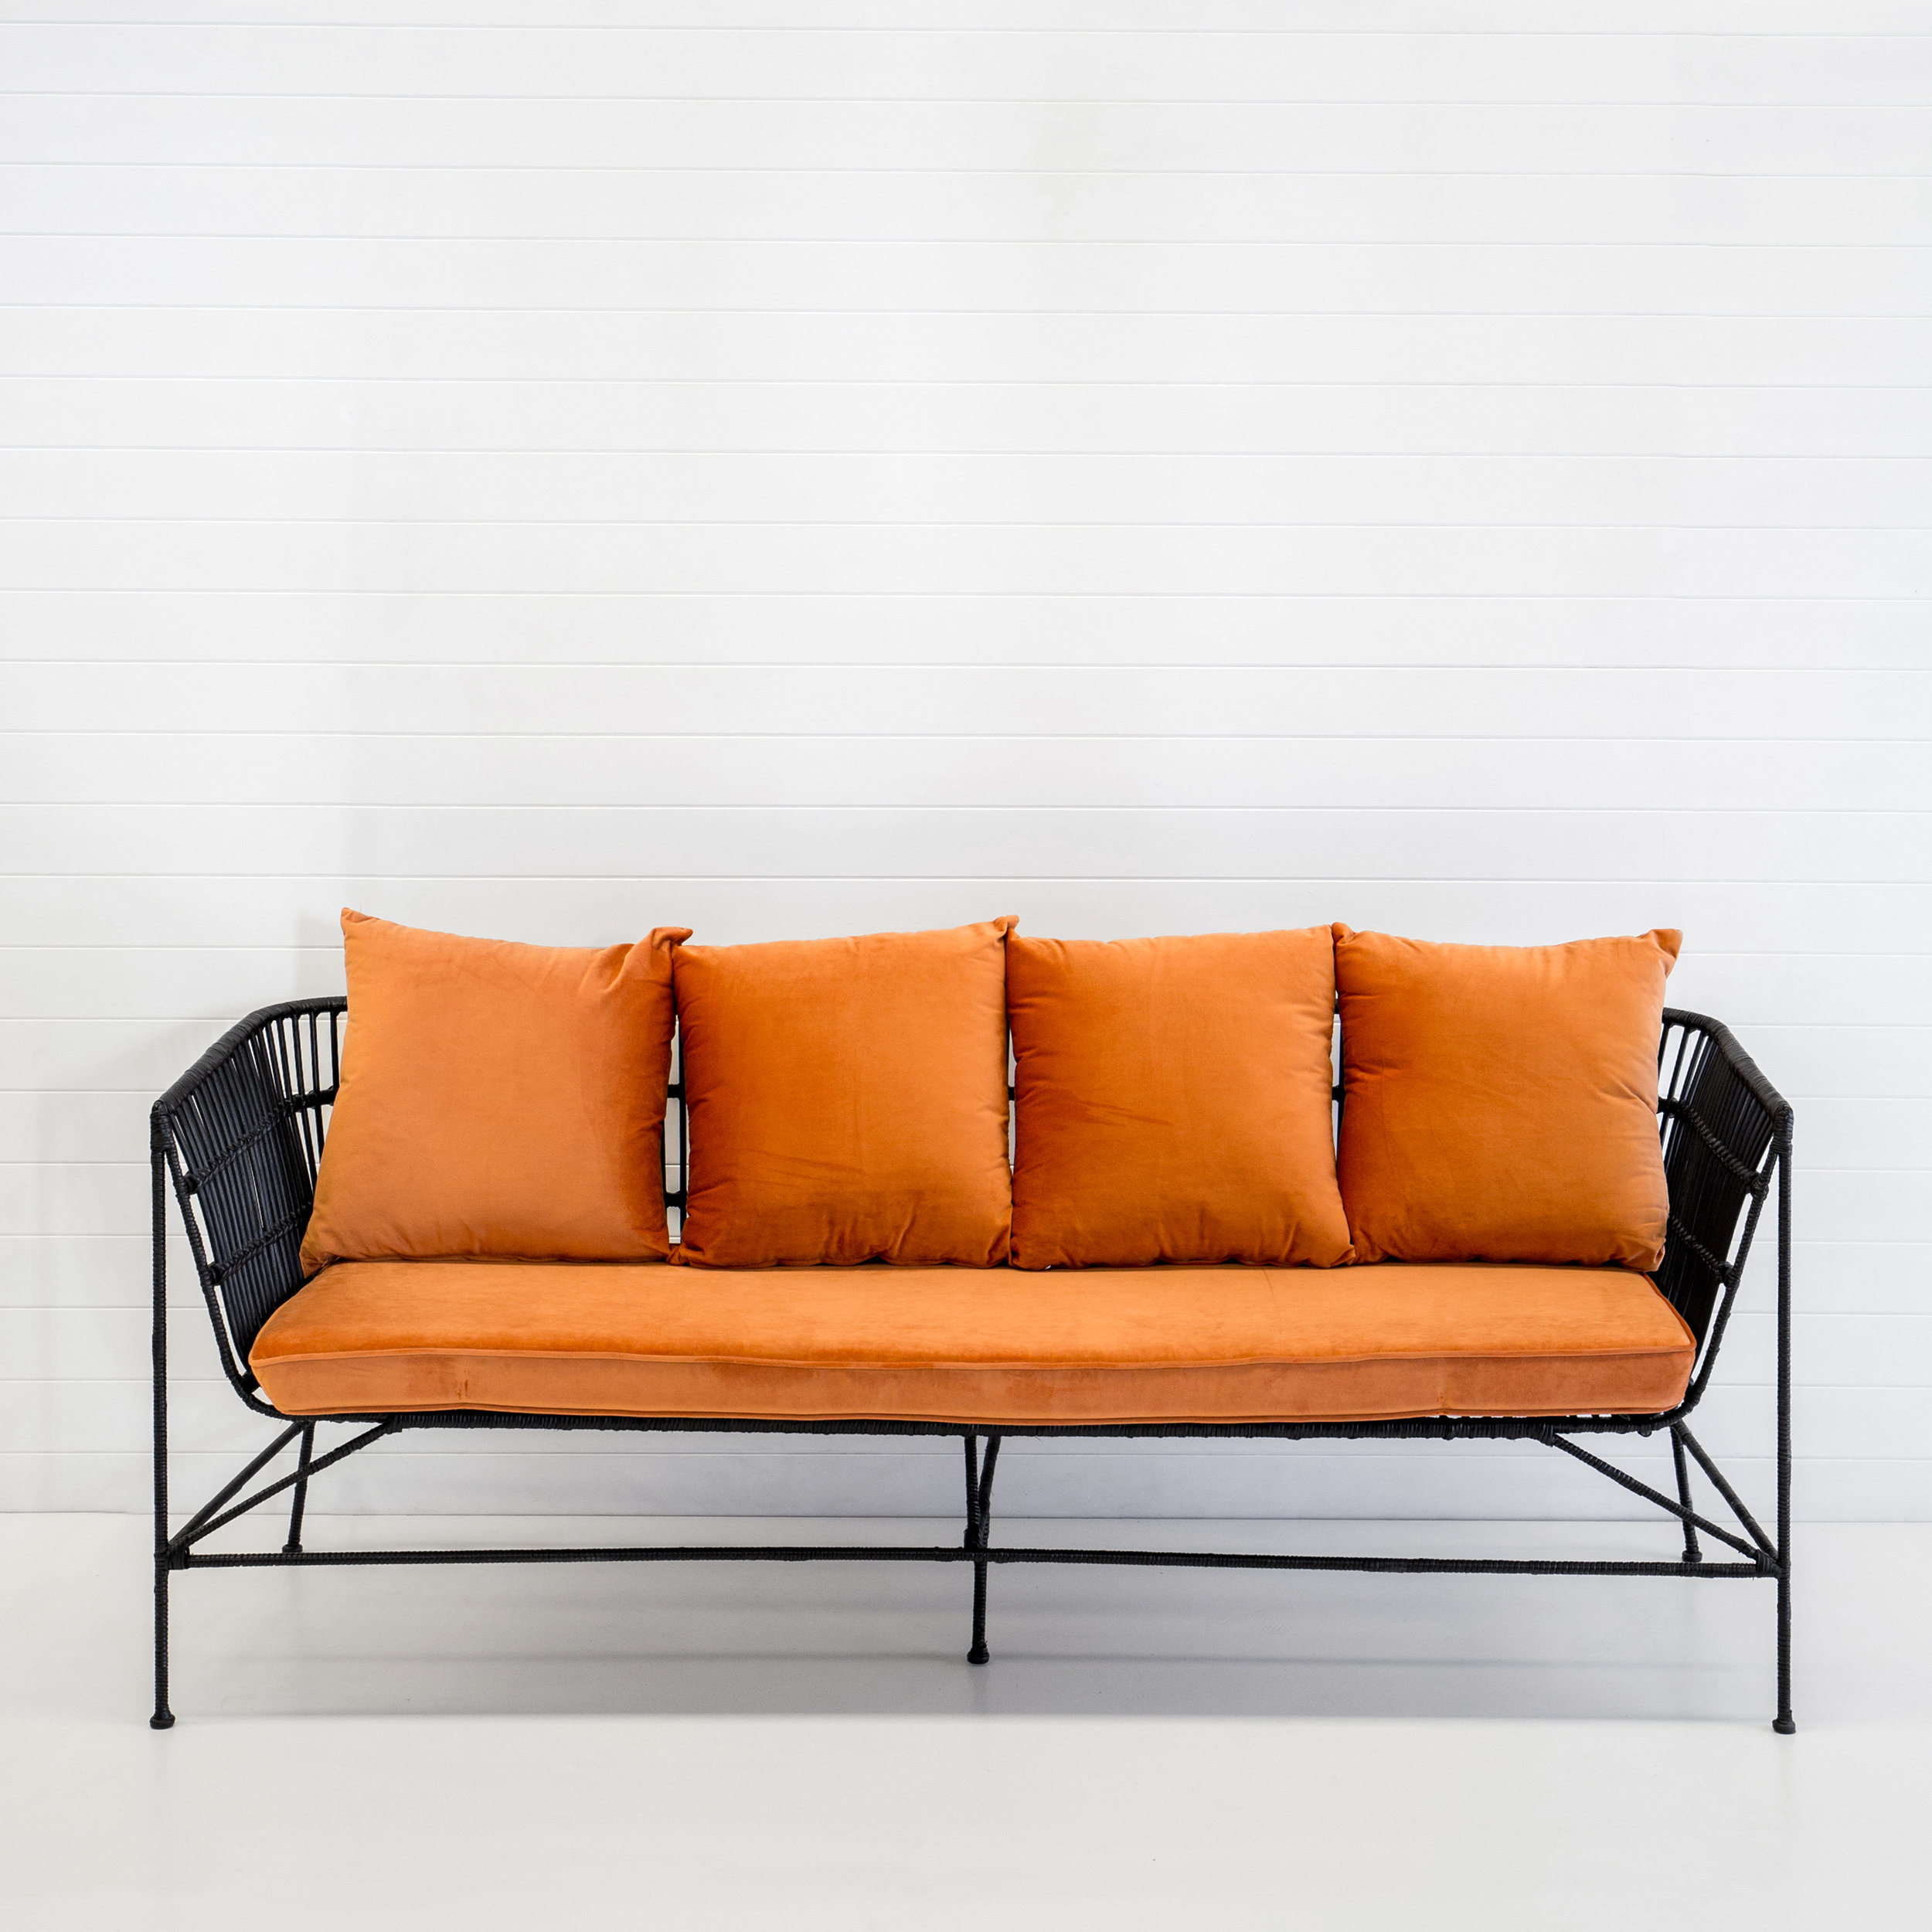 INDIE BLACK 3-SEATER SOFA WITH RUST VELVET CUSHIONS